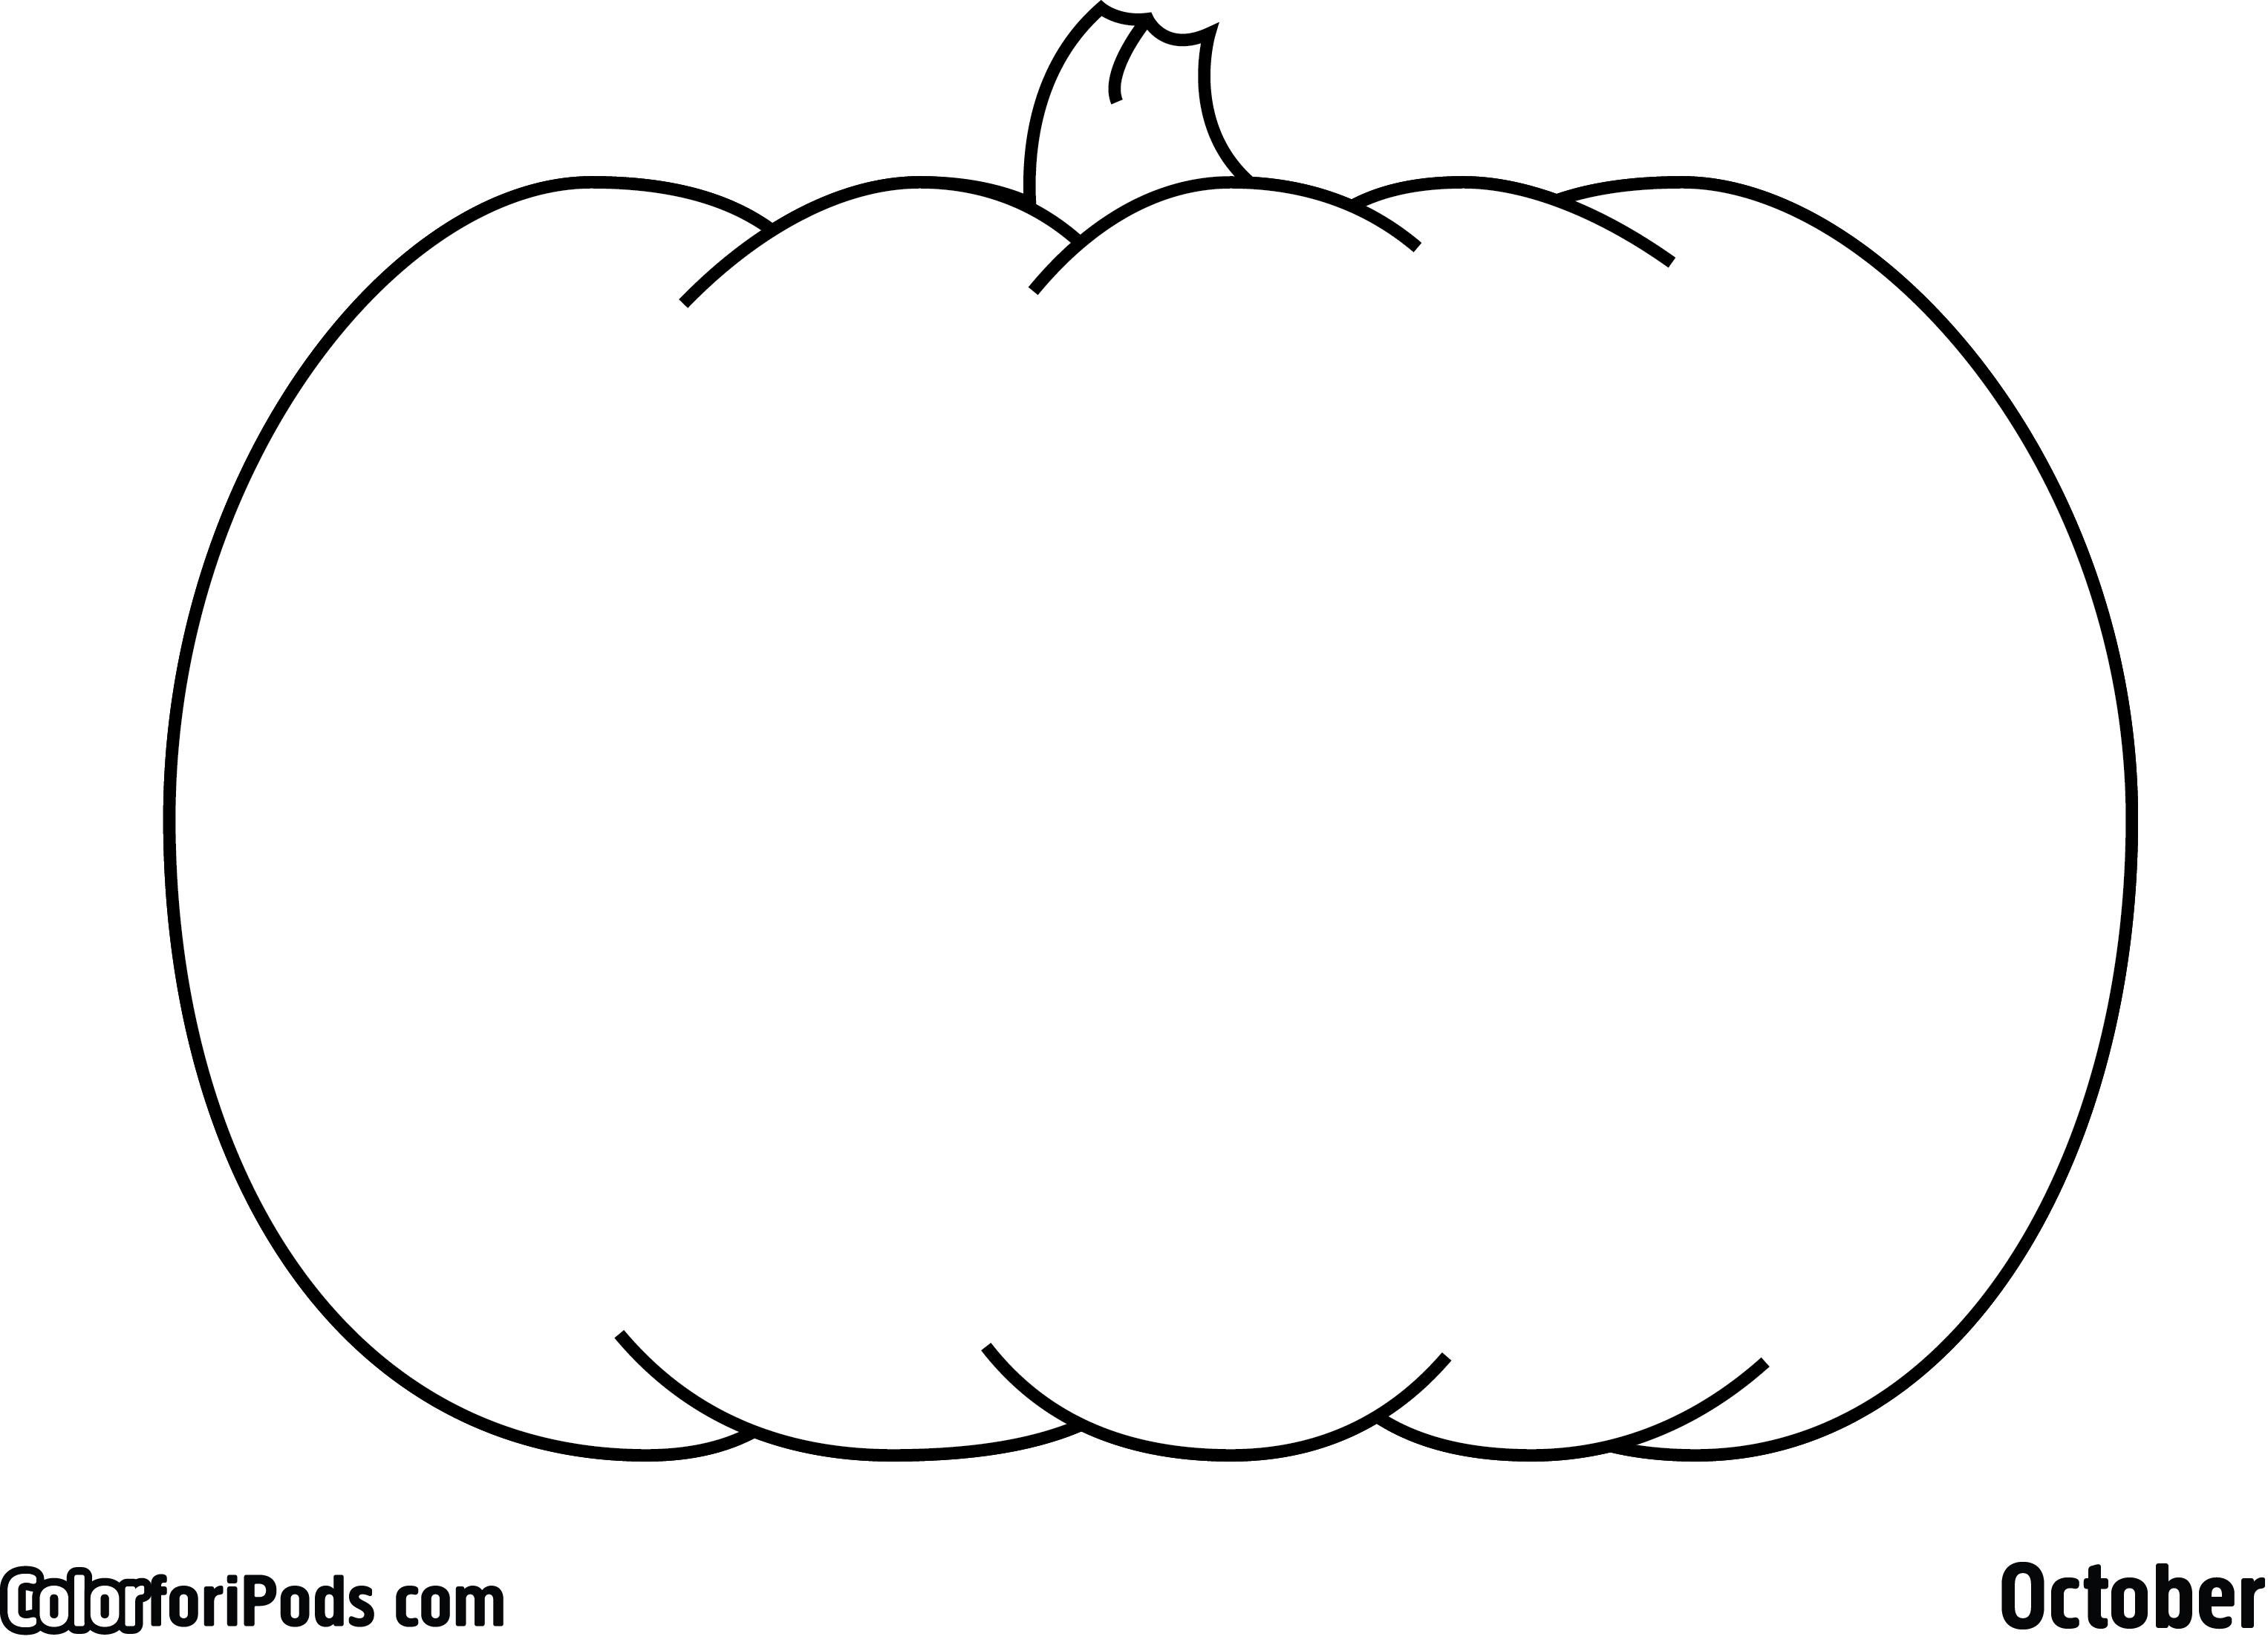 jack o lantern coloring page - free coloring pages